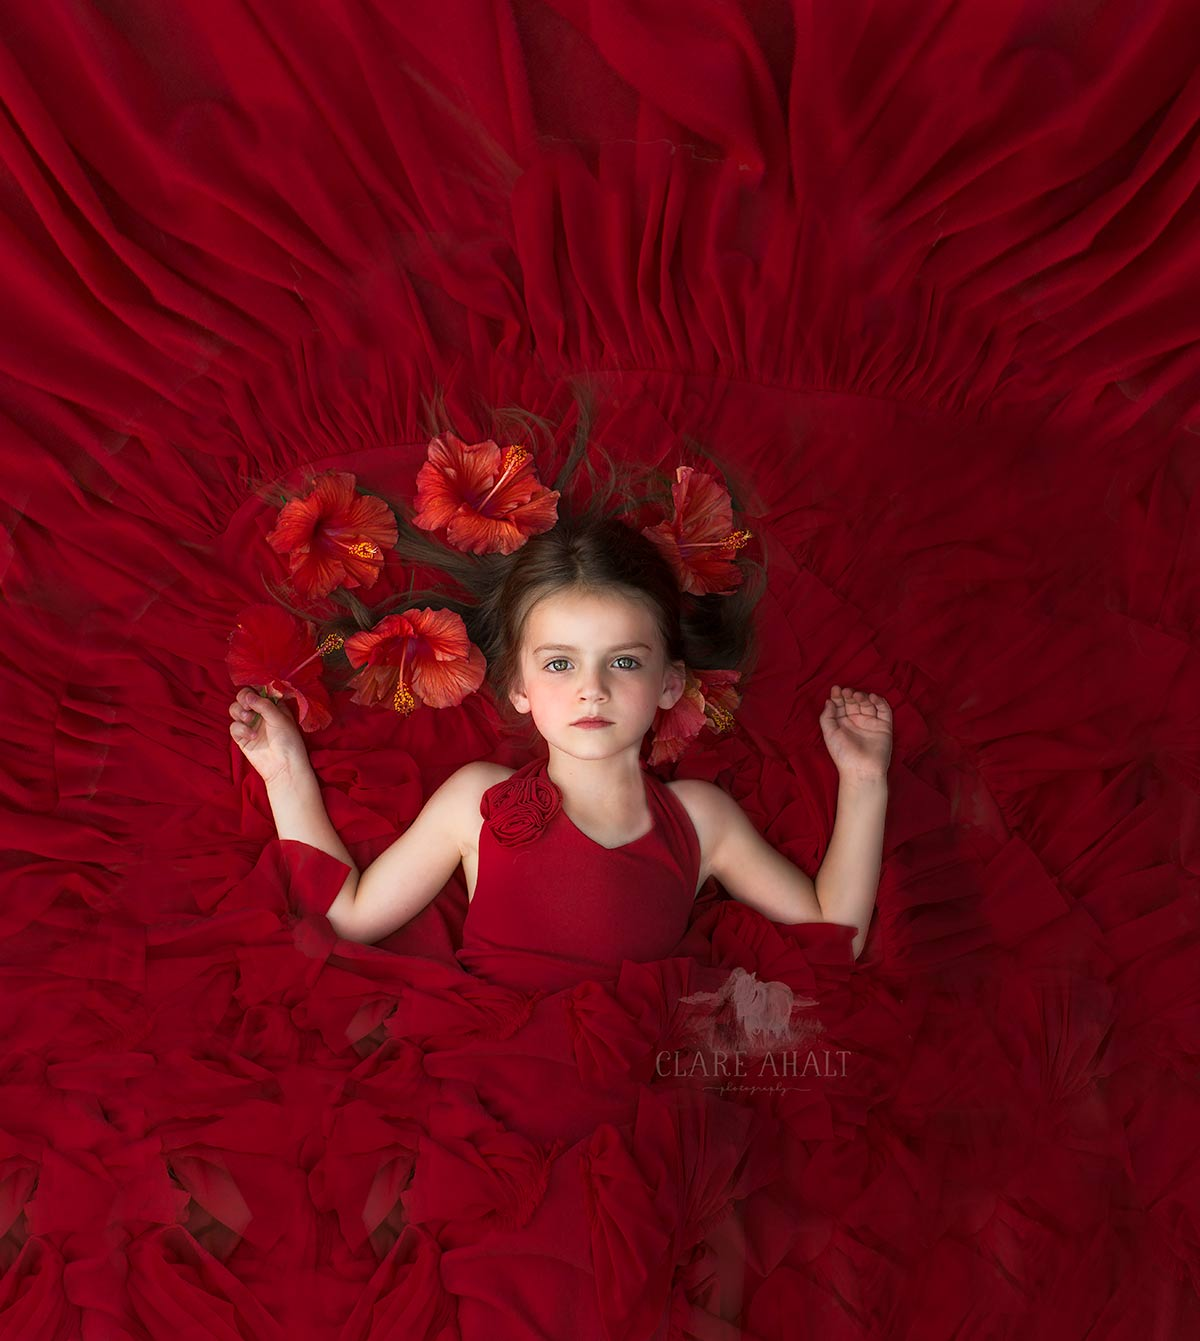 Portrait of a Child in a red dress, photographed in Maryland by Clare Ahalt Photography